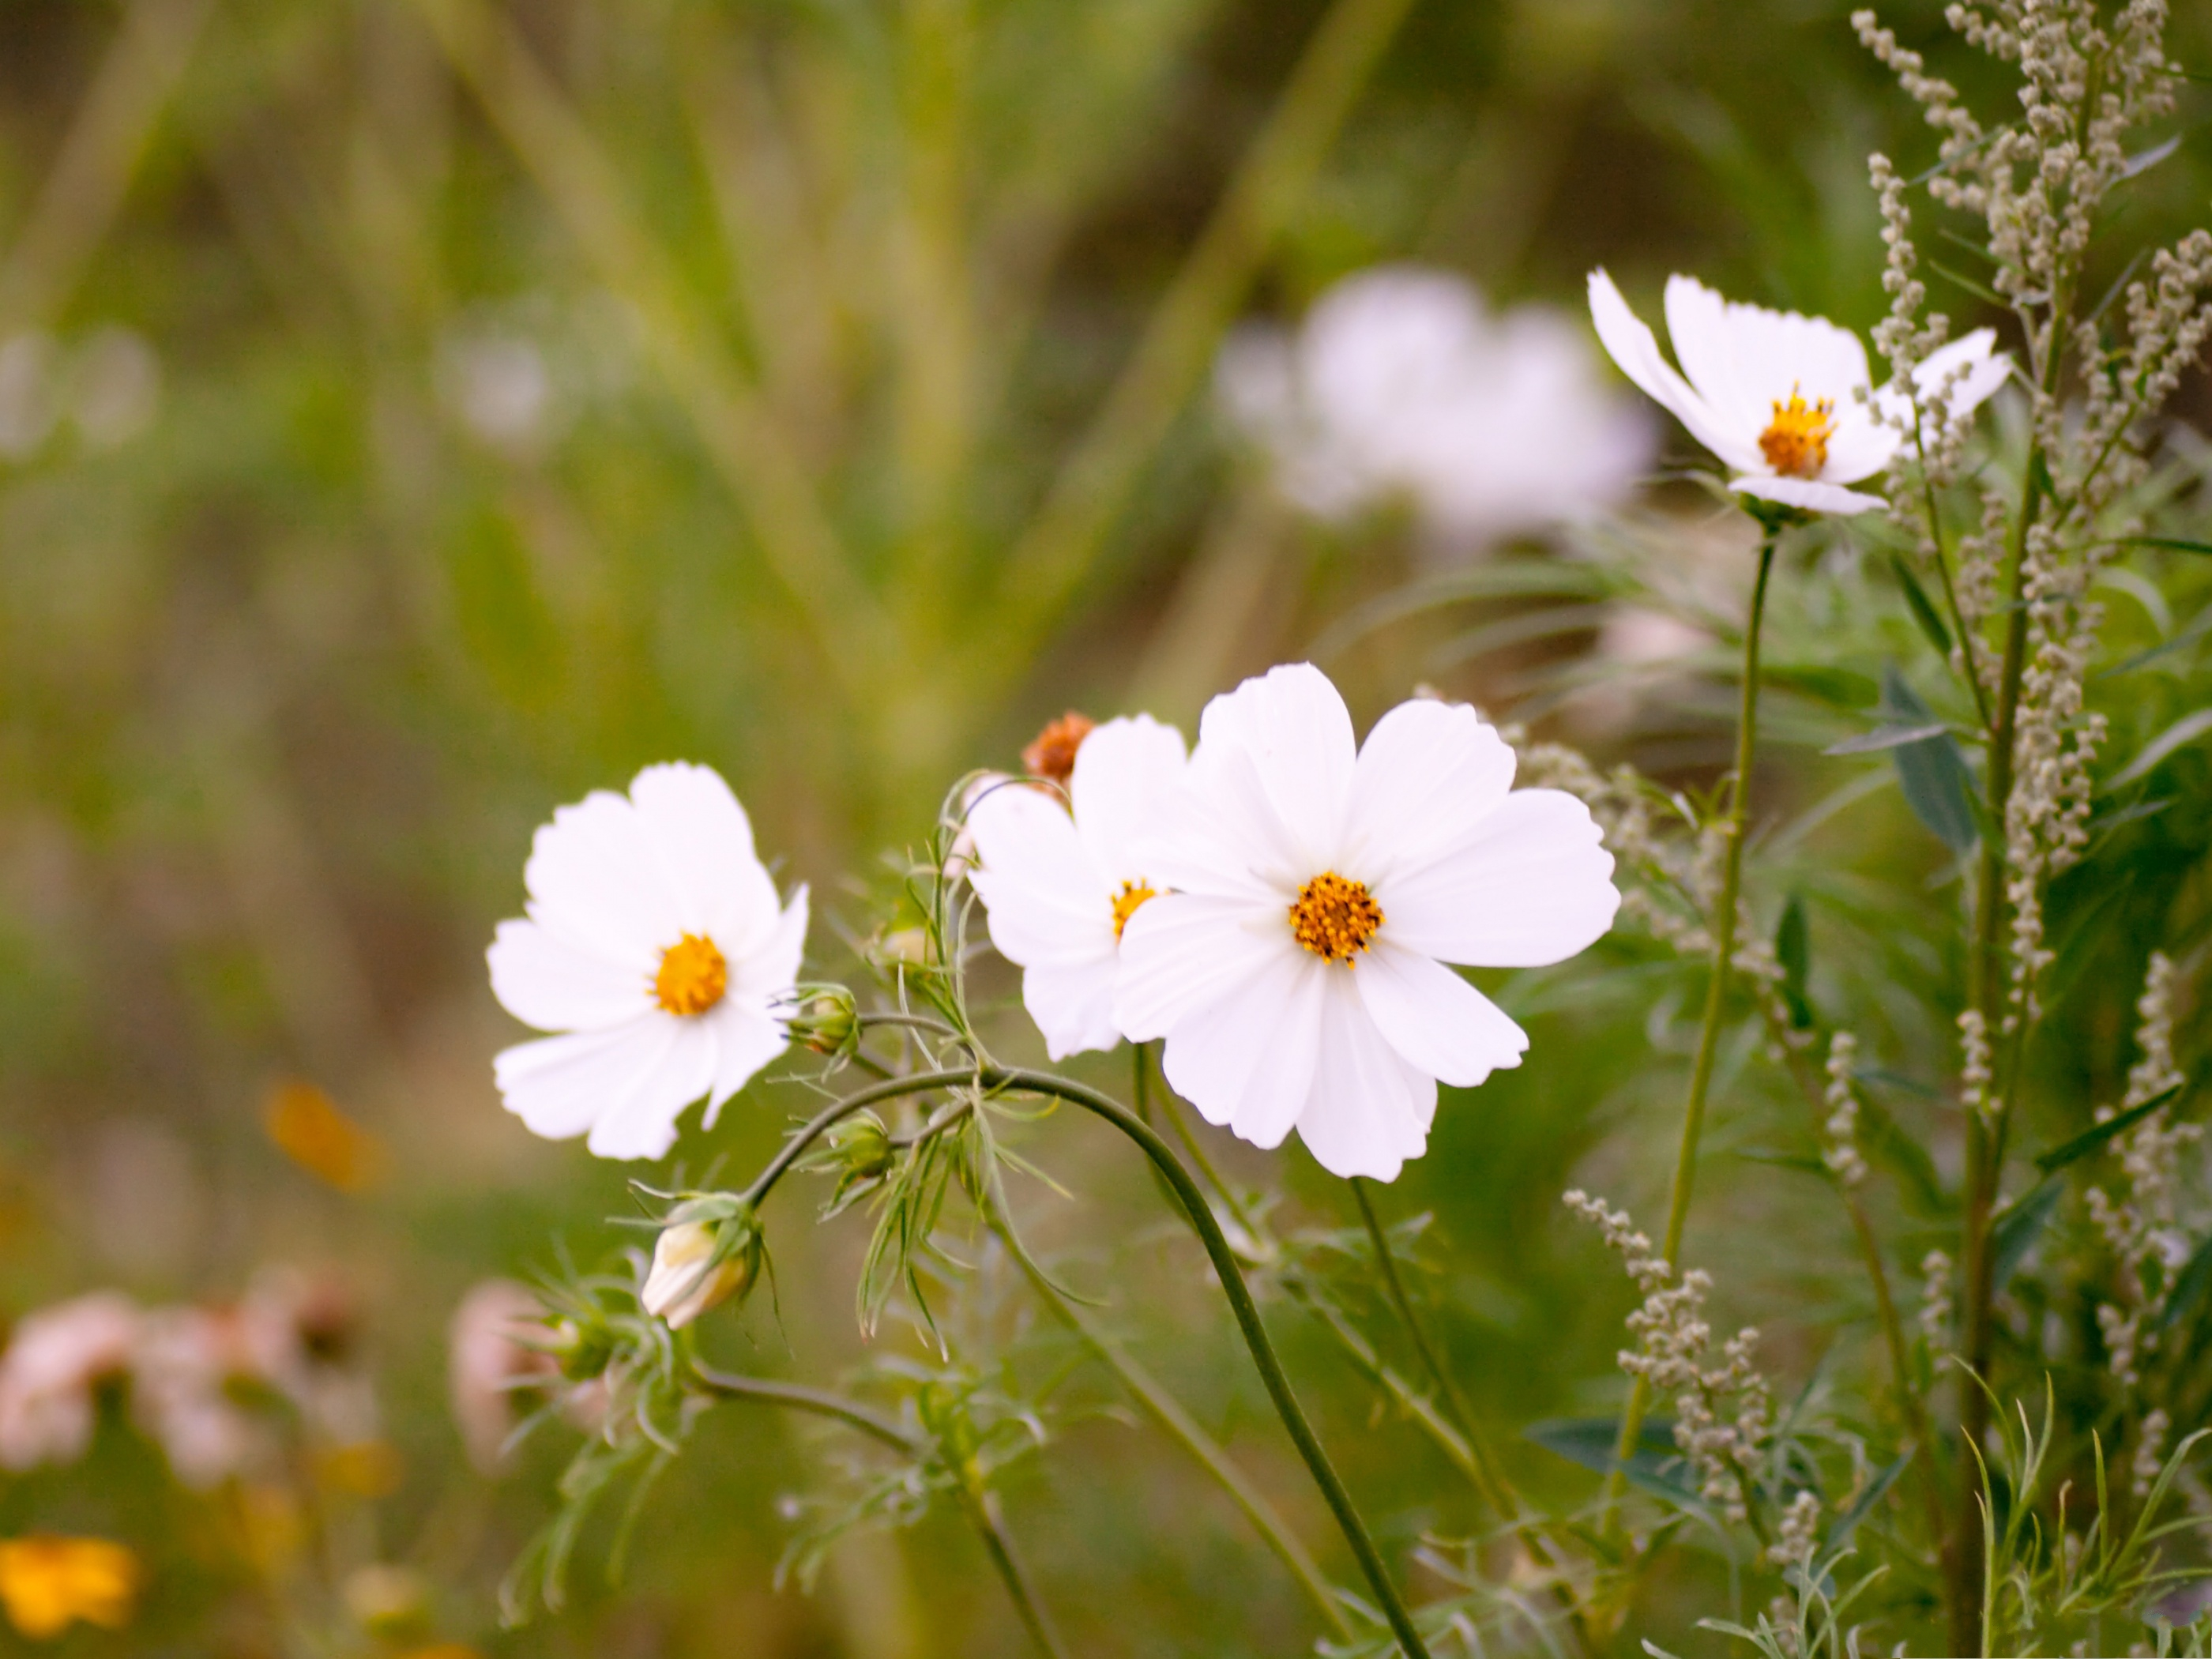 click to free download the wallpaper--White Cosmos Flowers, Pure Blooming Flower, Green Background 2800X2100 free wallpaper download